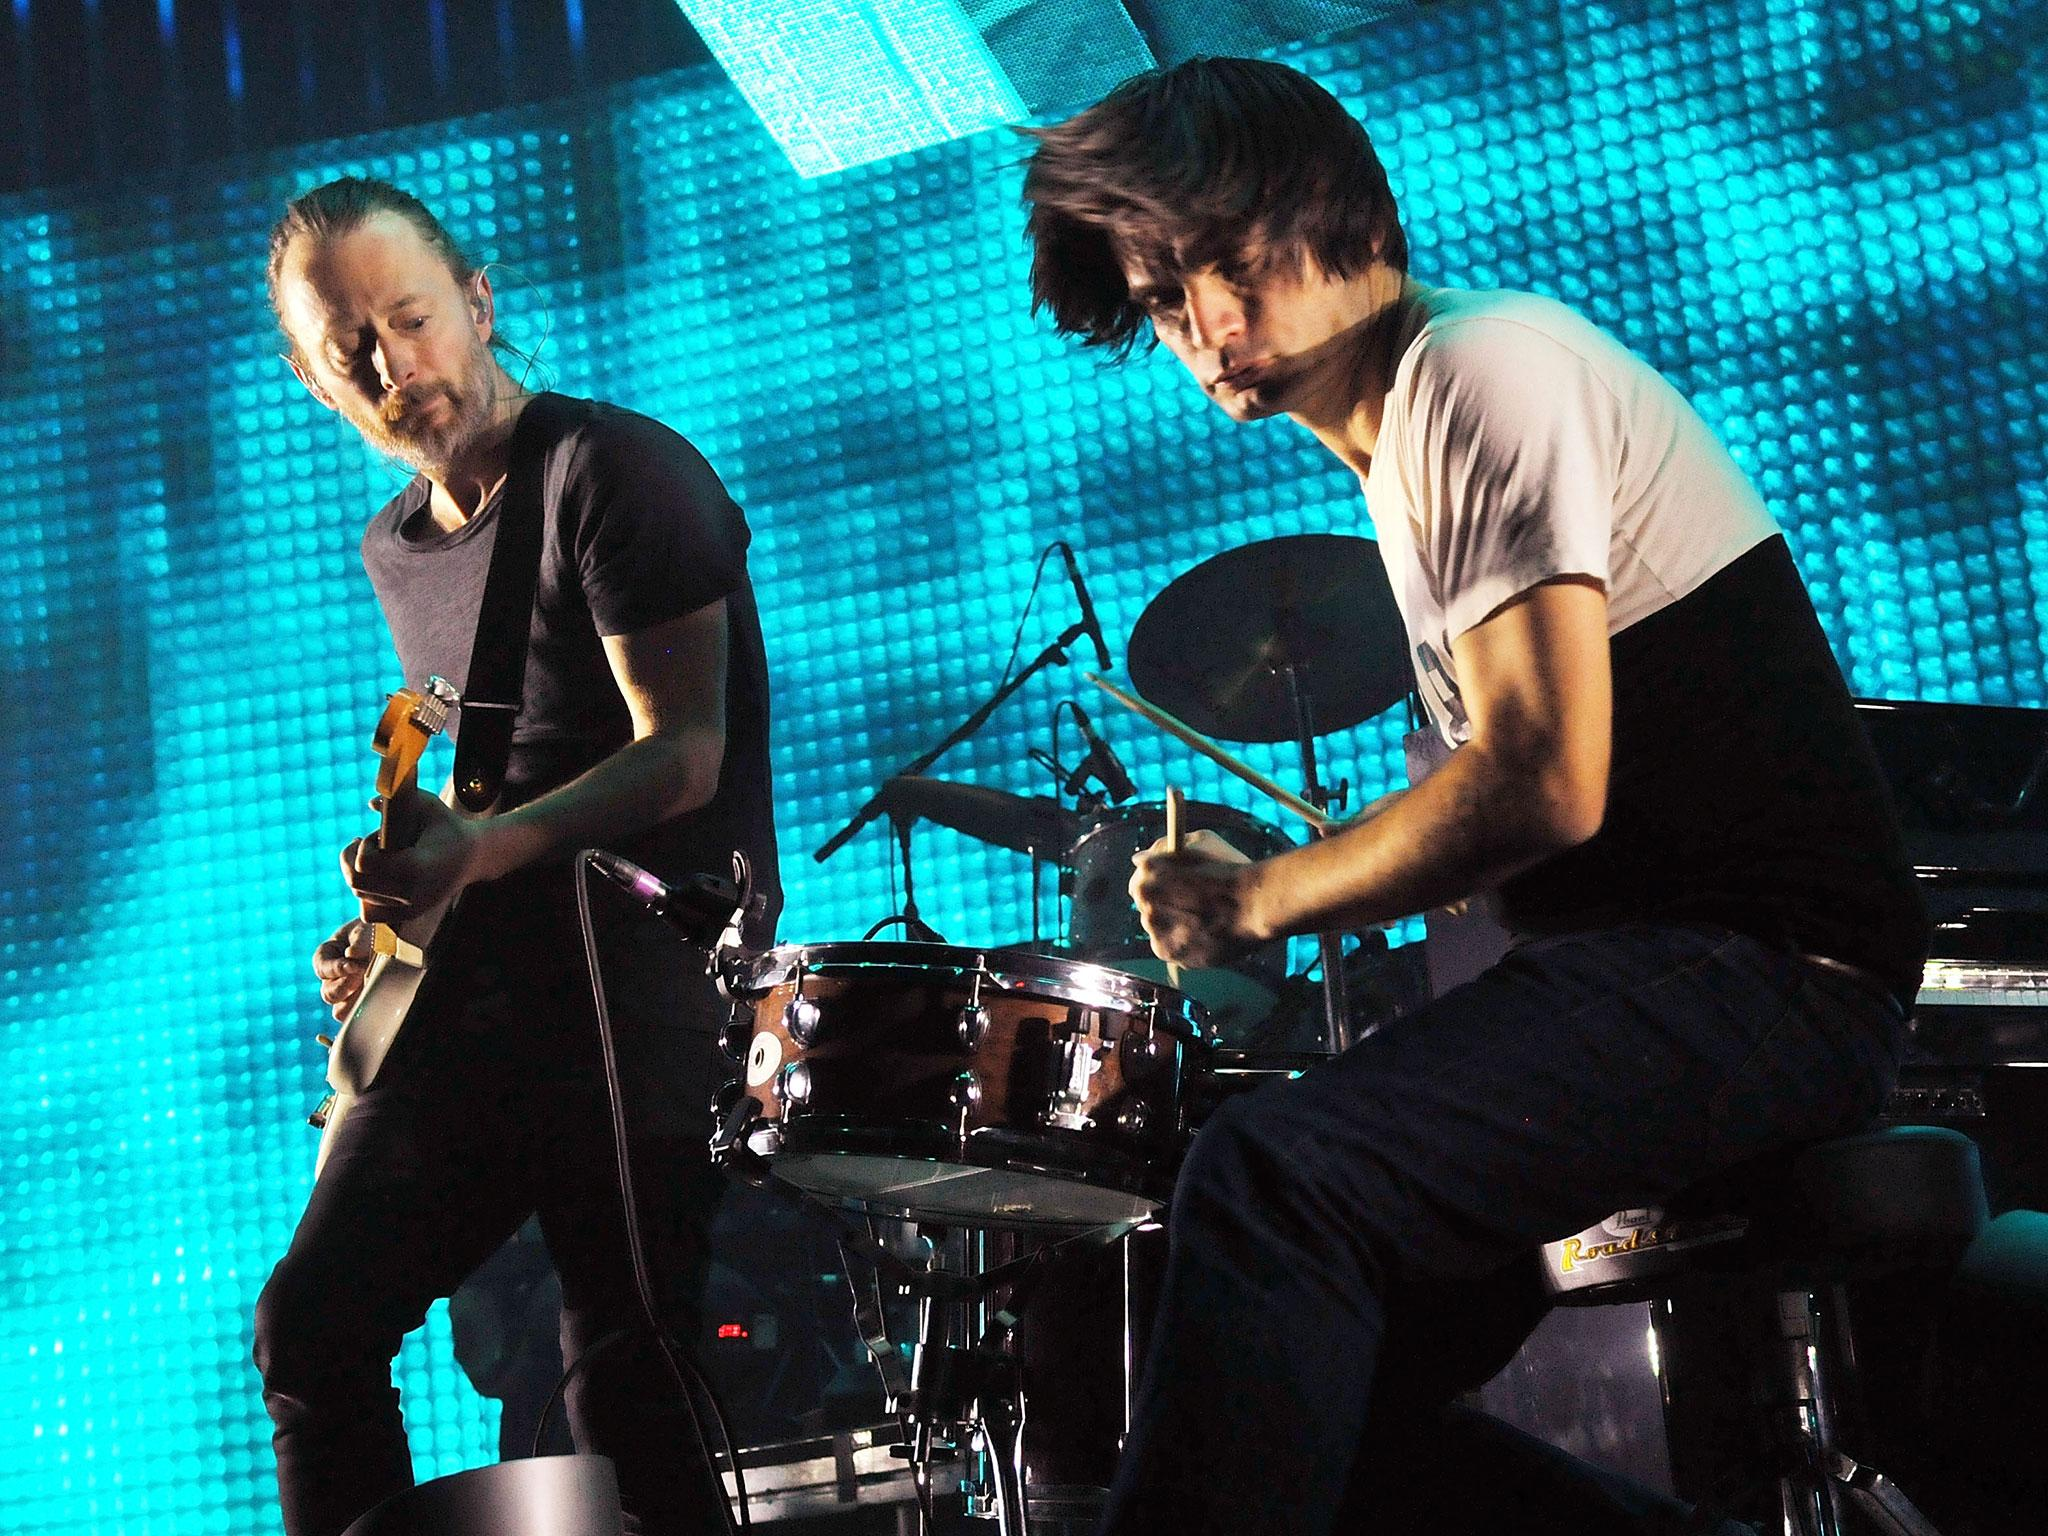 Radiohead announce North American tour dates. The tour begins on July 7th in Chicago and runs through August 1st in Philadelphia, PA.